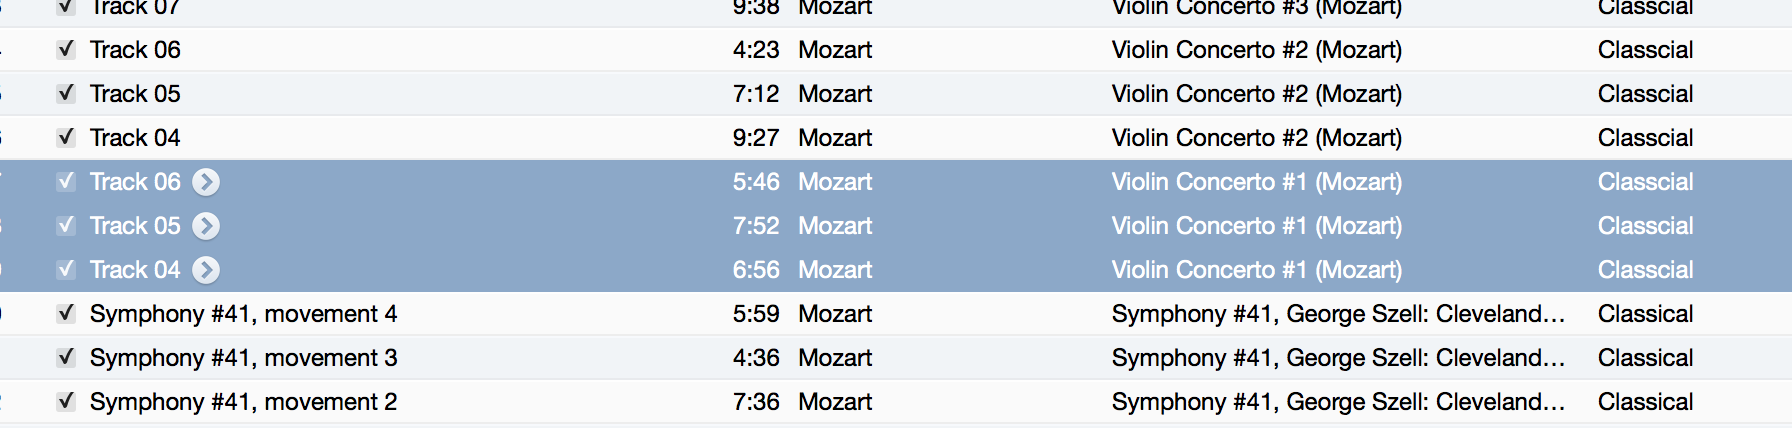 i-Tunes and Classical Music Movements in Correct Order